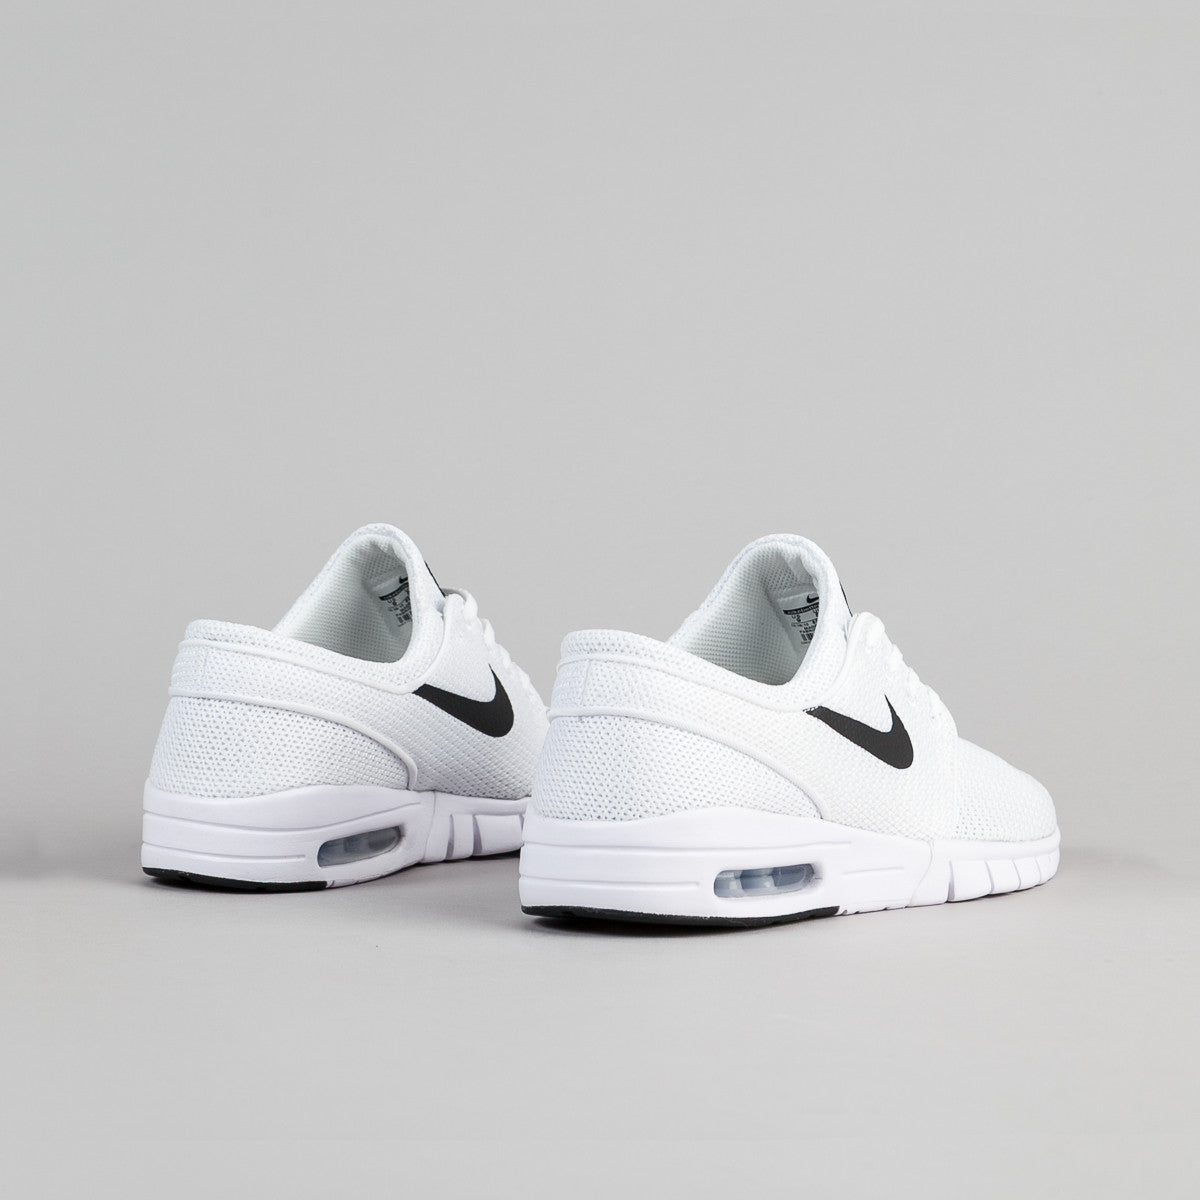 Nike SB Stefan Janoski Max Shoes - White / Black